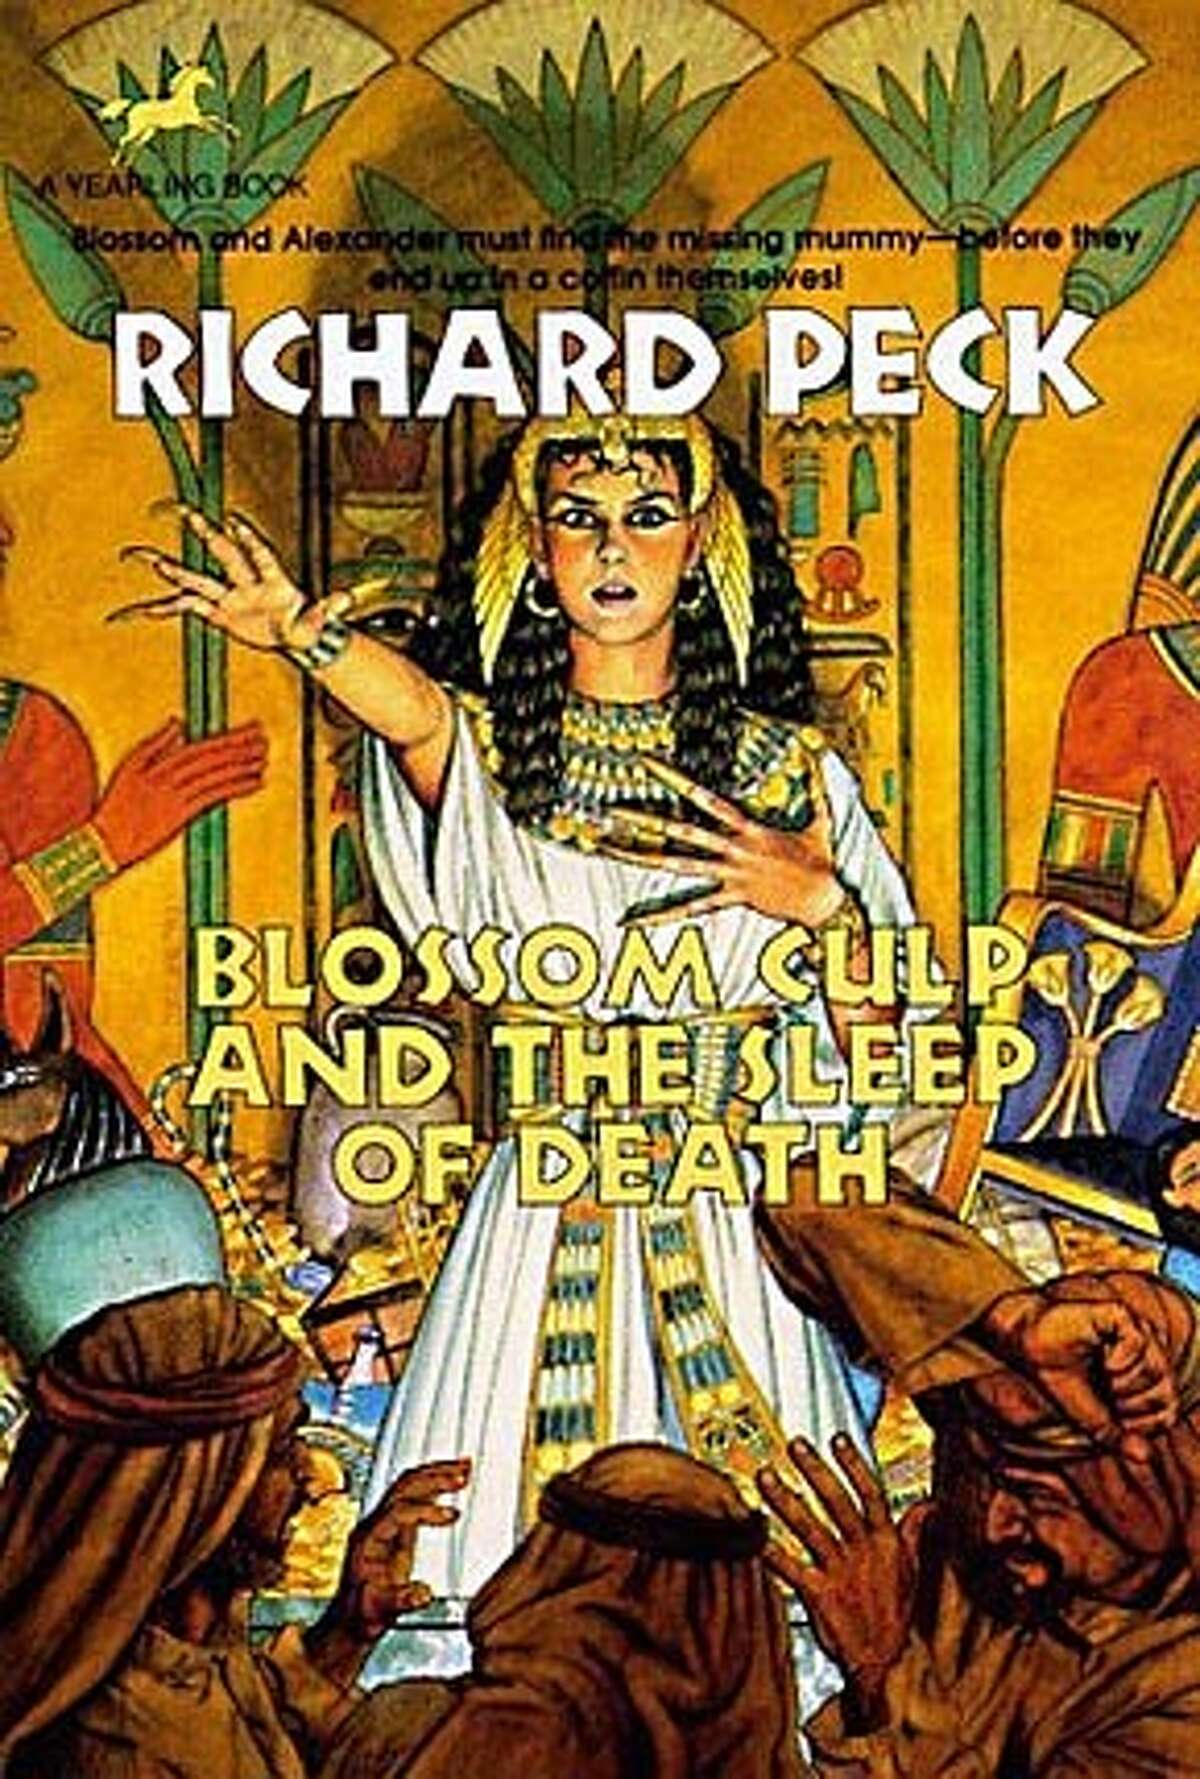 """Book cover art for, """"Blossom Culp and The Sleep of Death"""" by Richard peck. BookReview#BookReview#Chronicle#08-28-2005#ALL#2star#C6#0423201239"""